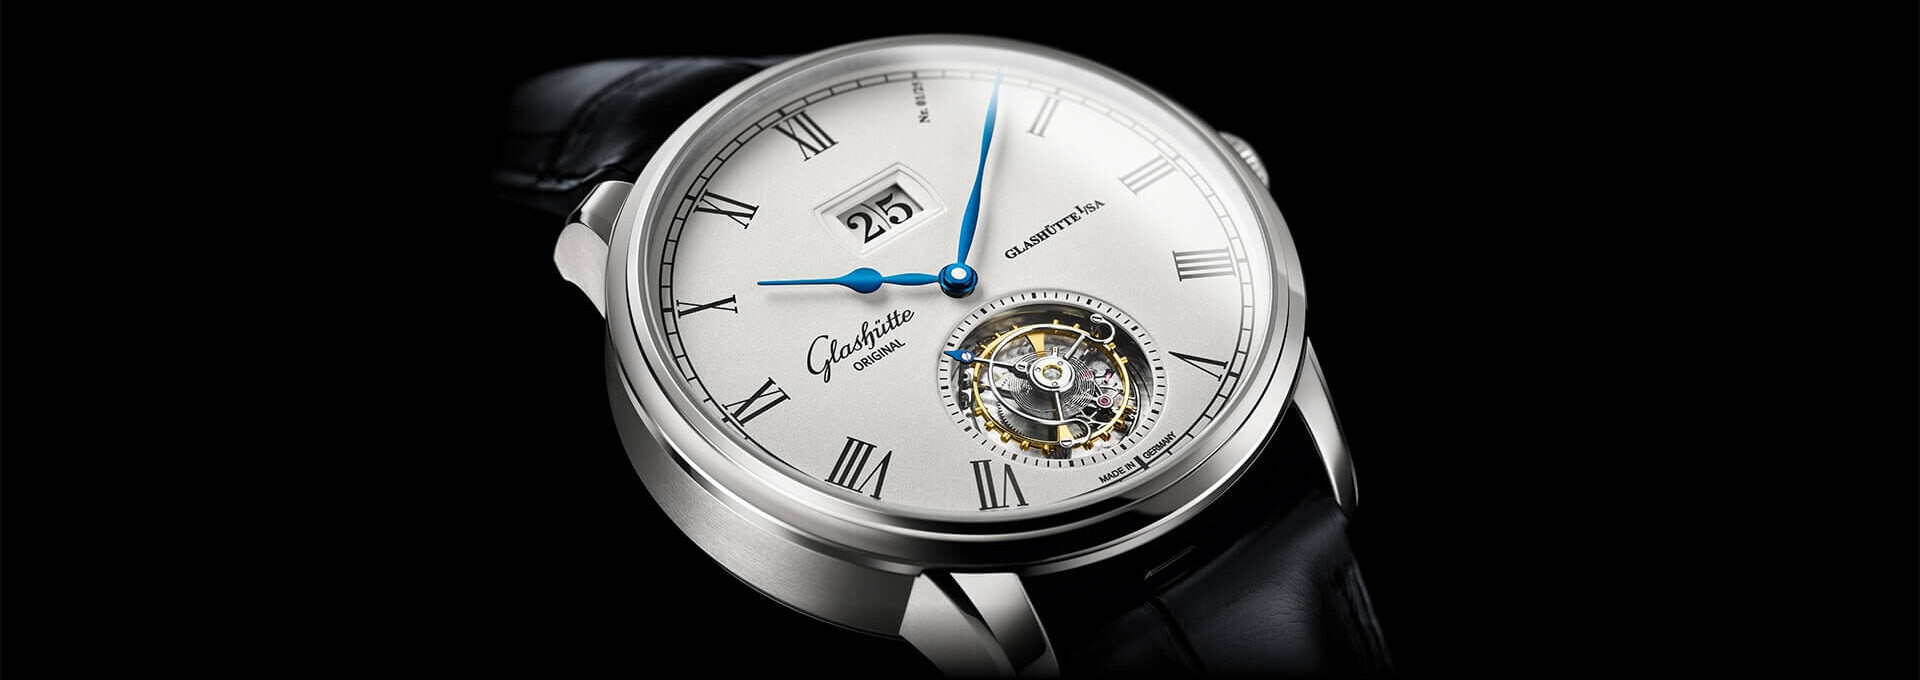 Glashuette_Original-W19403050430-Detail-3